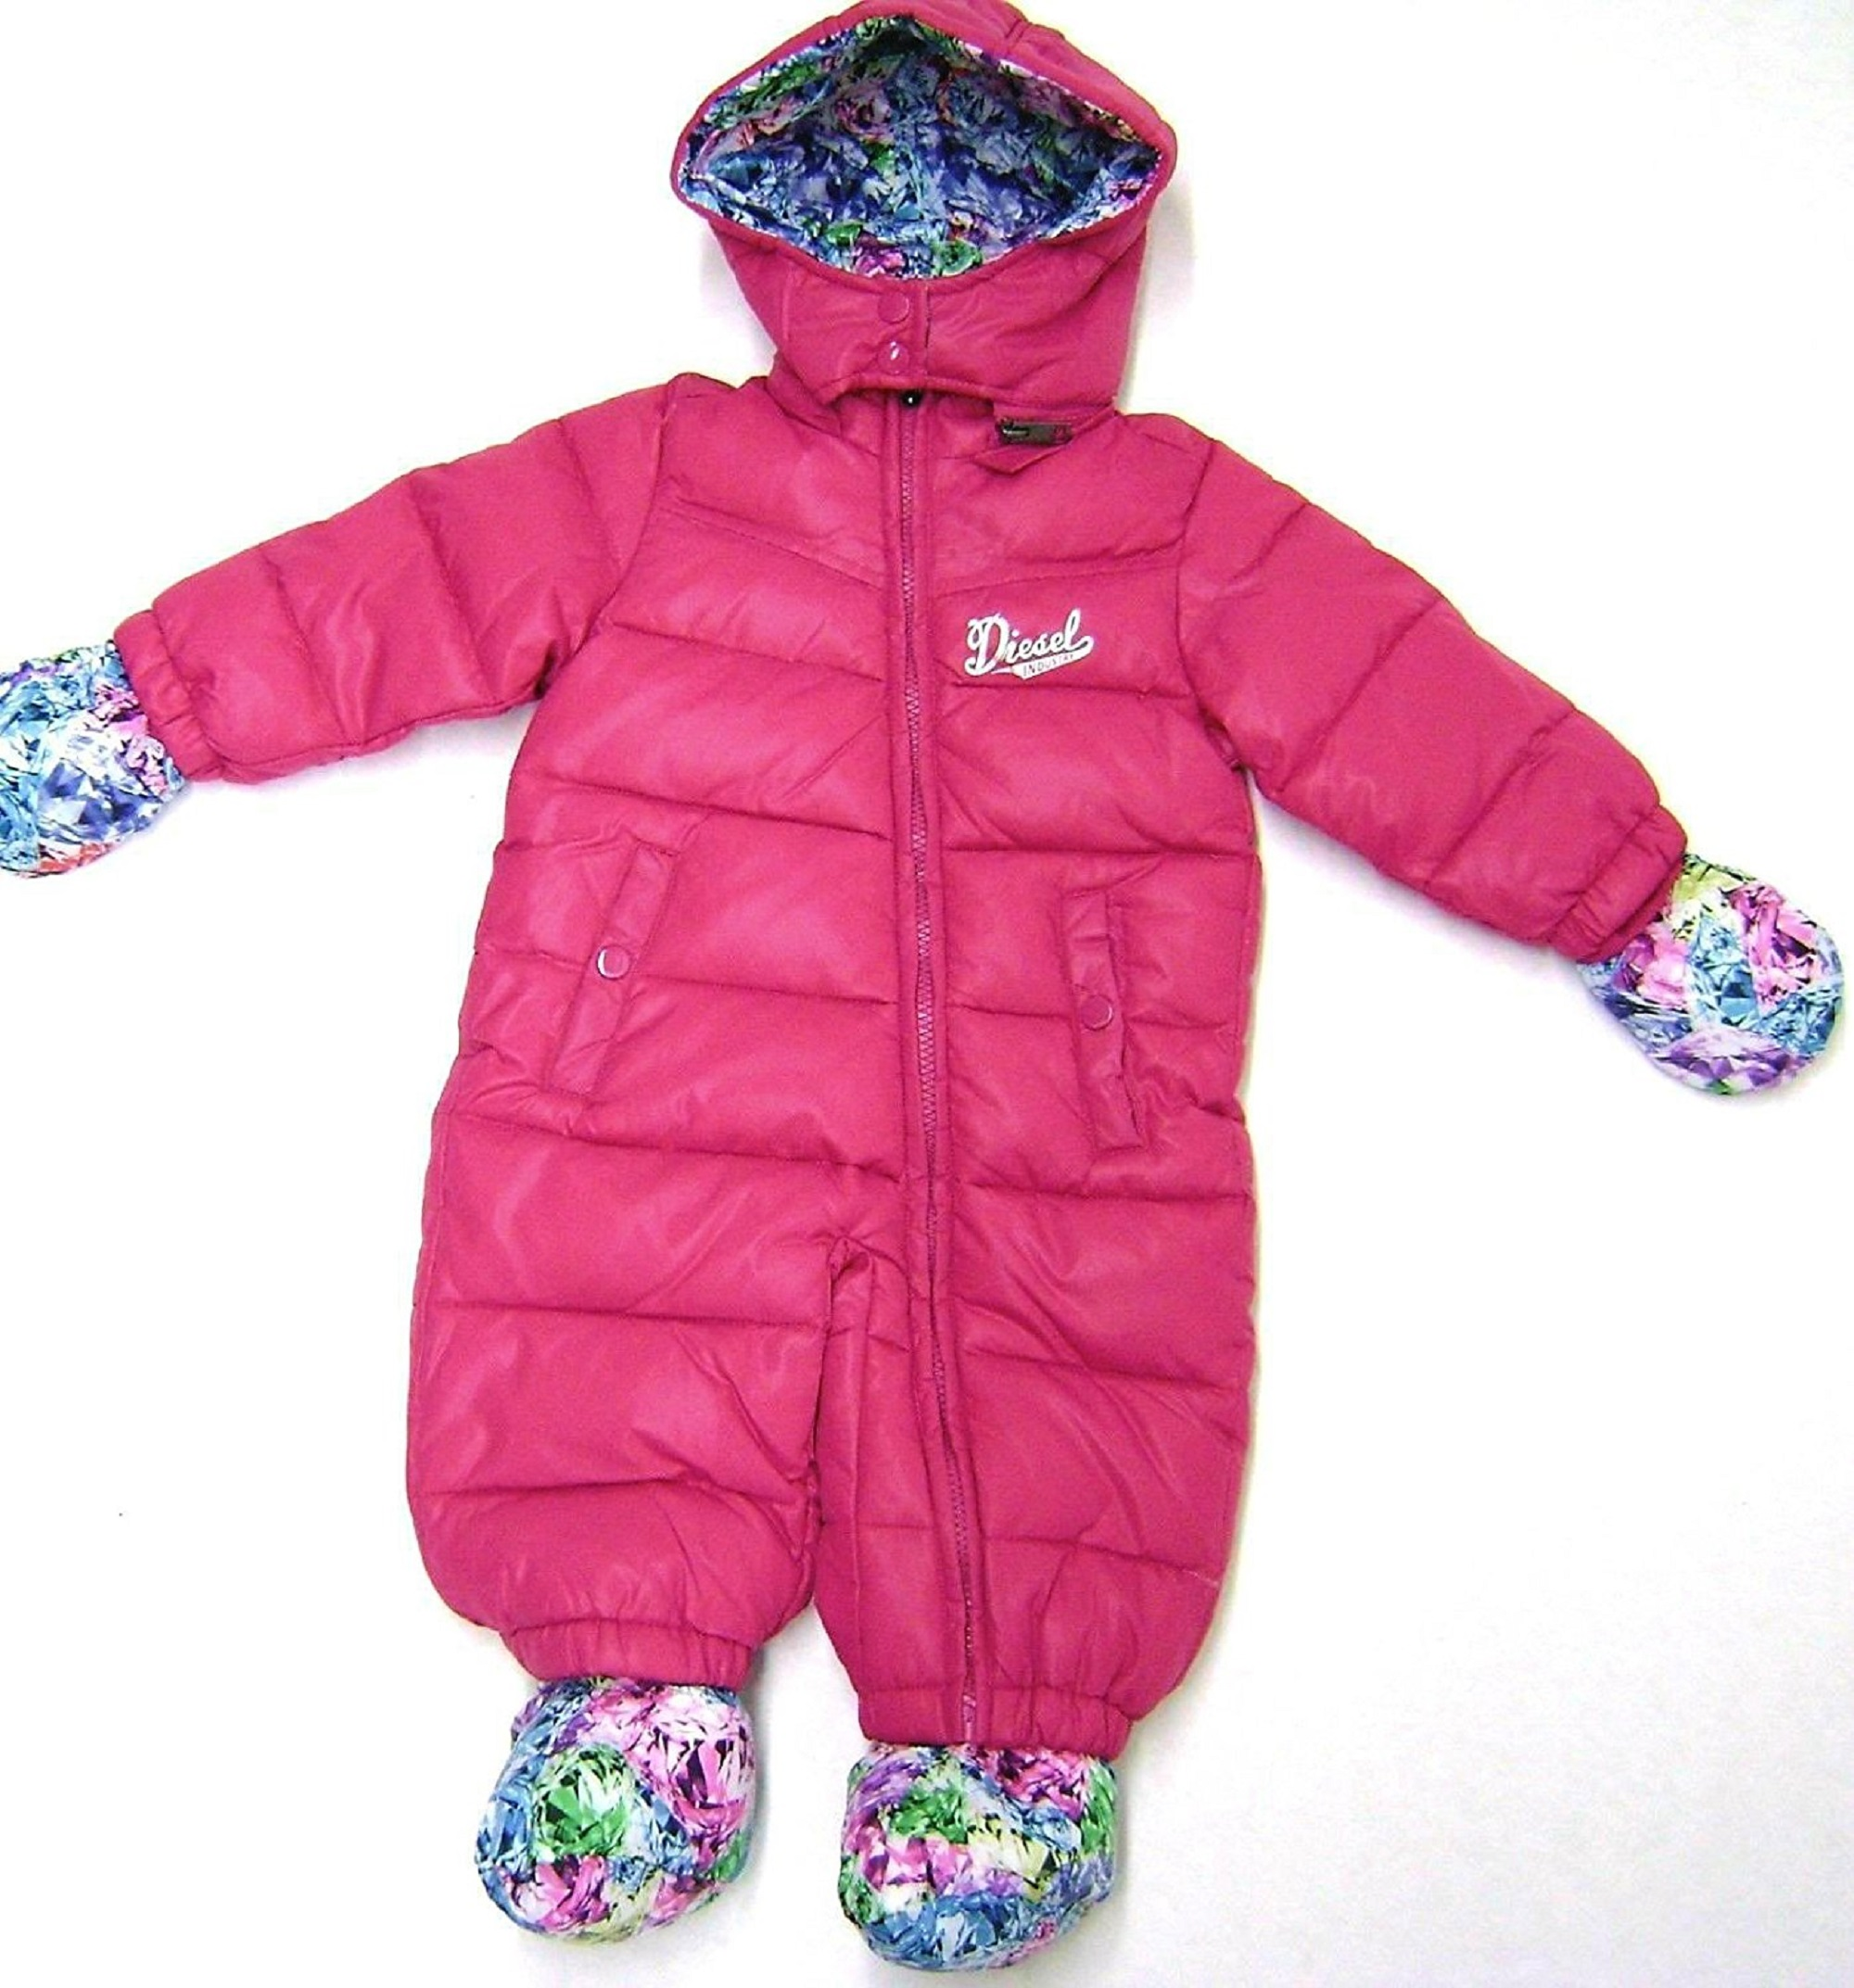 Diesel Baby Girls Insulated Hooded Pram Snowsuit with Detachable Hood, Mittens and Booties, (18 Month, Hot Pink)